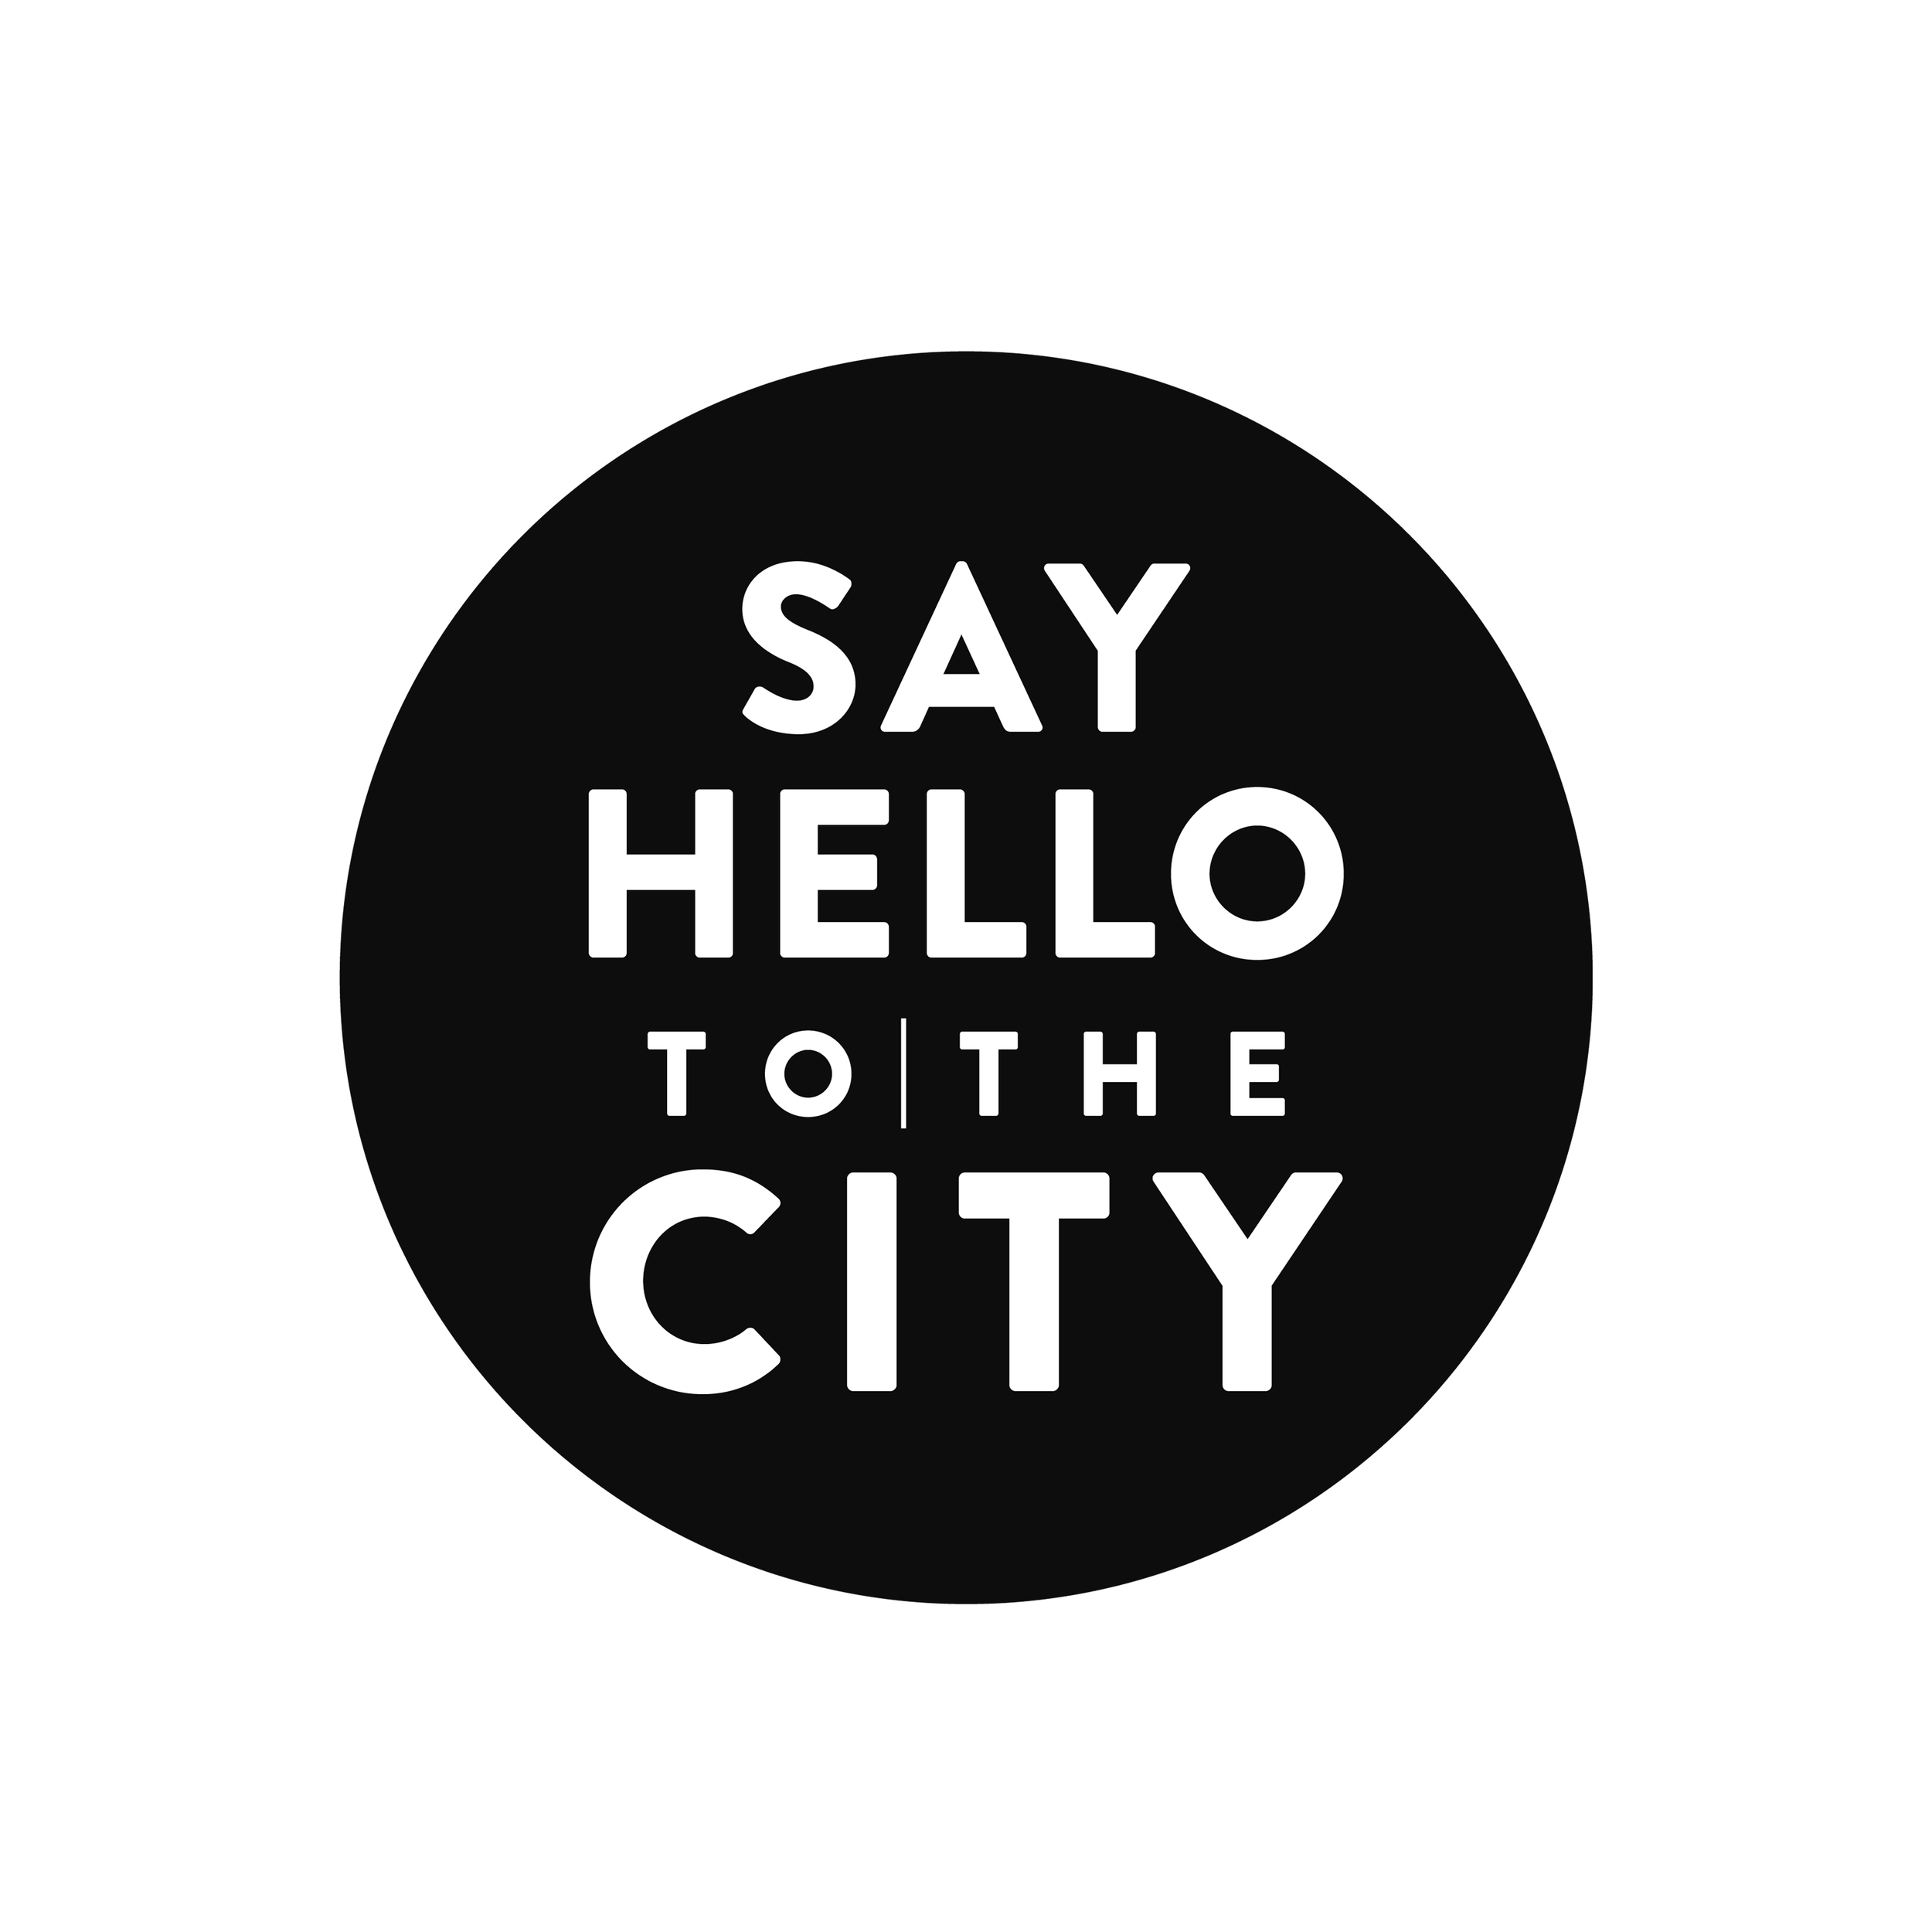 SayHello_Logo_Circle (1).jpg